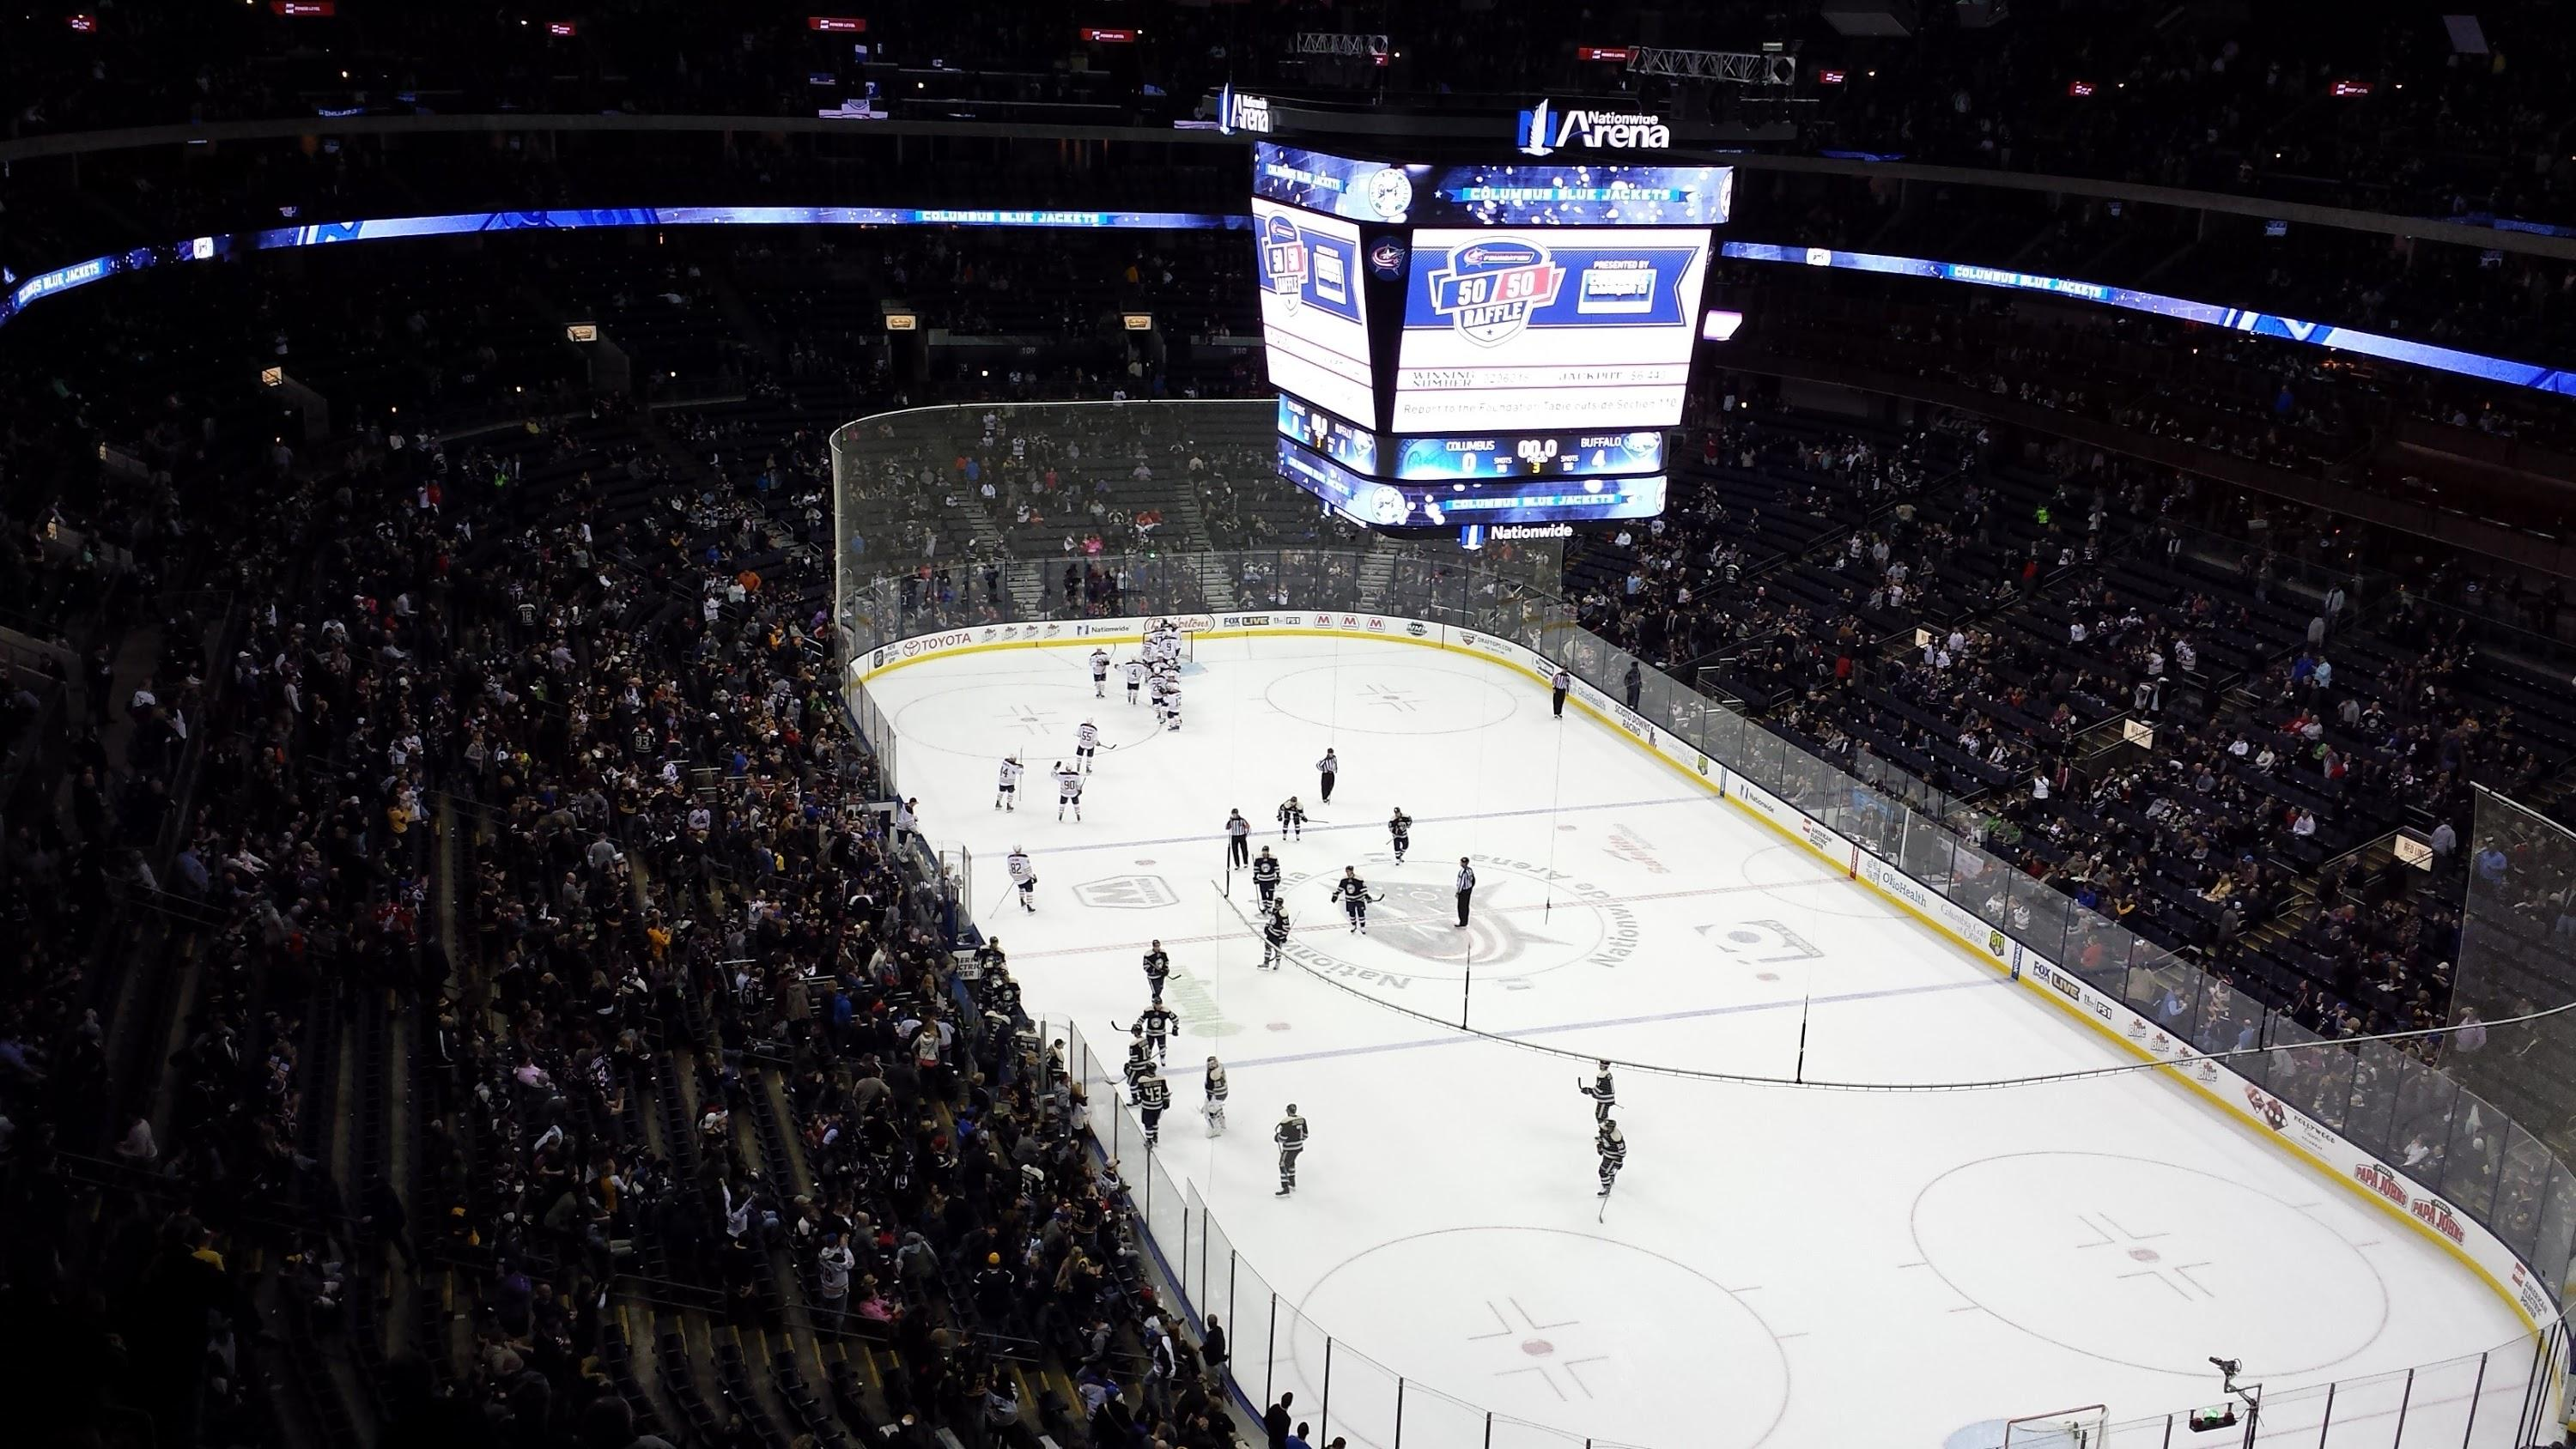 Nationwide Arena Section 226 Row P Seat 11